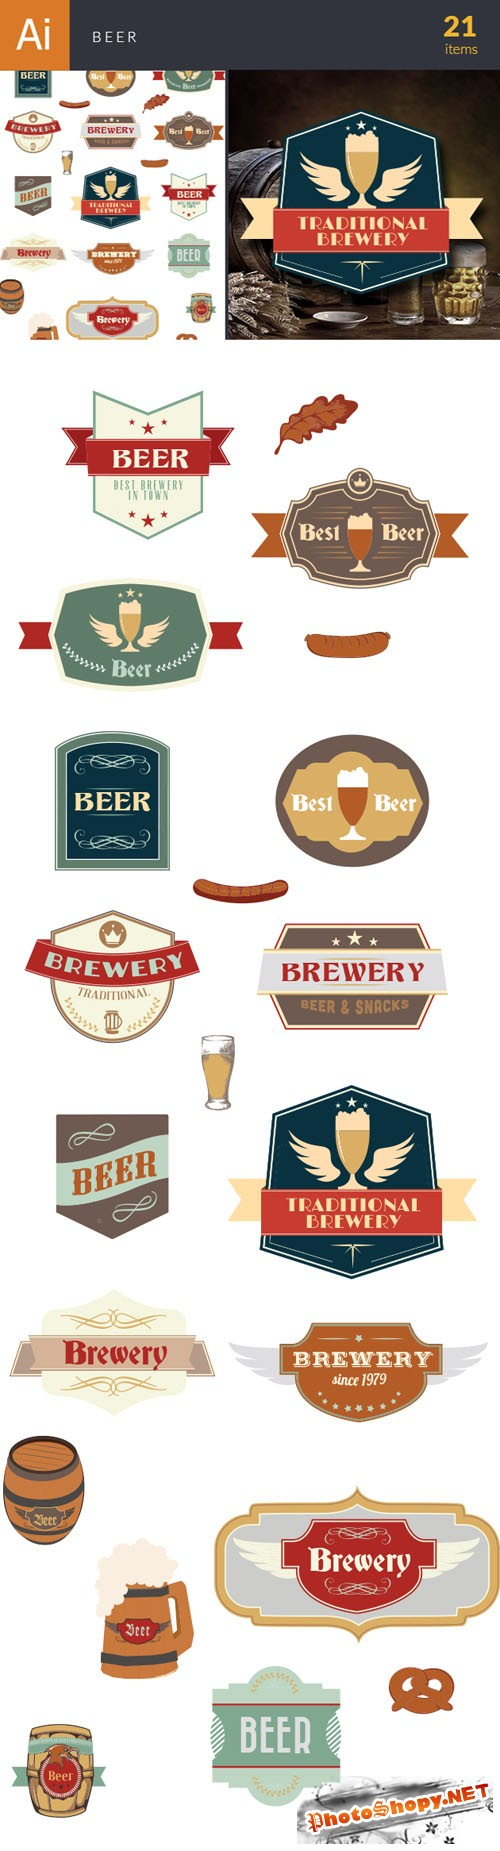 Beer Oktoberfest Vector Elements Set